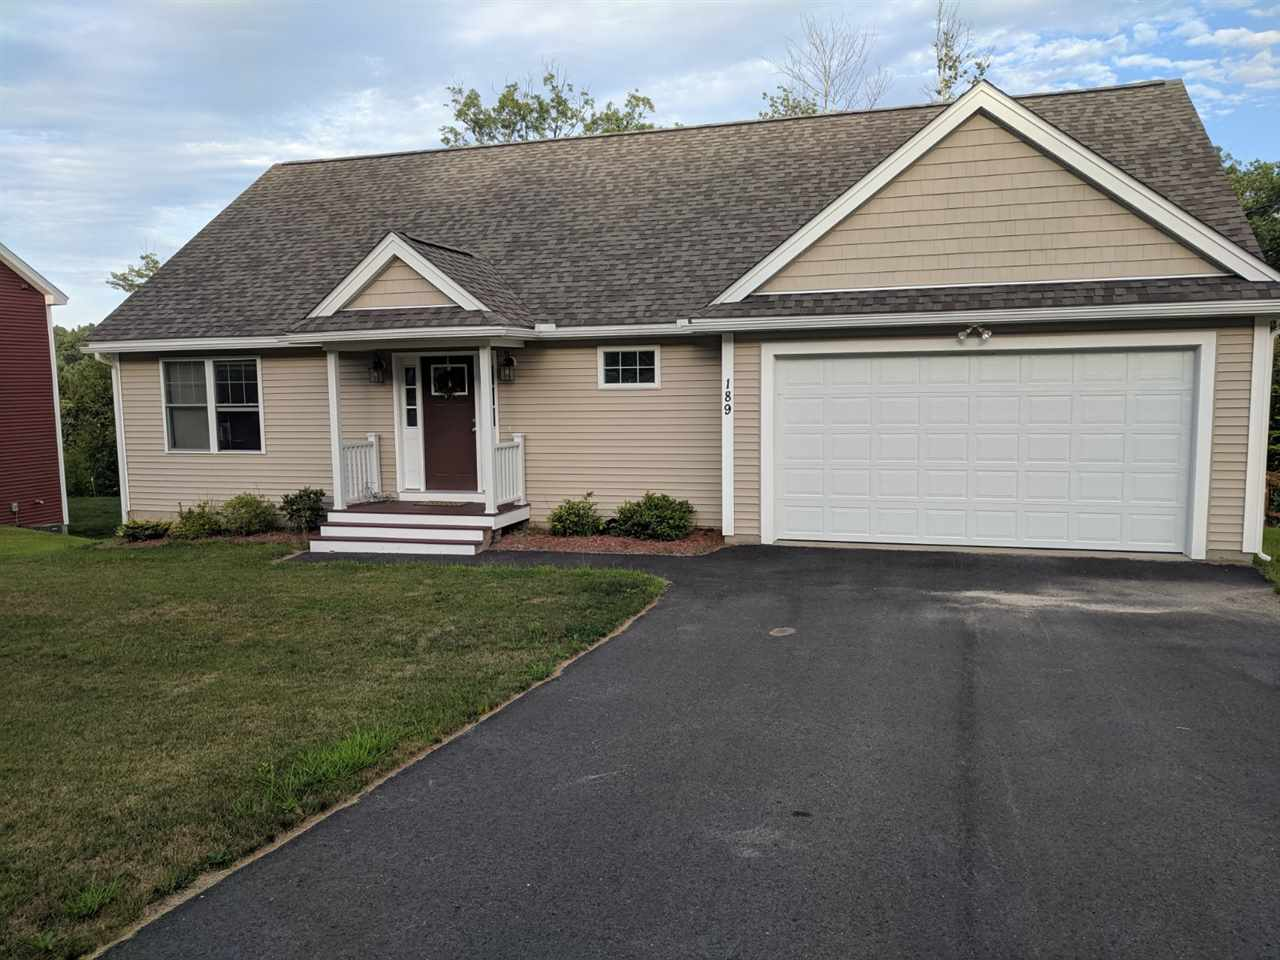 MLS 4814069: 189 Timber Ridge Drive-Unit 51/26/174, Milford NH